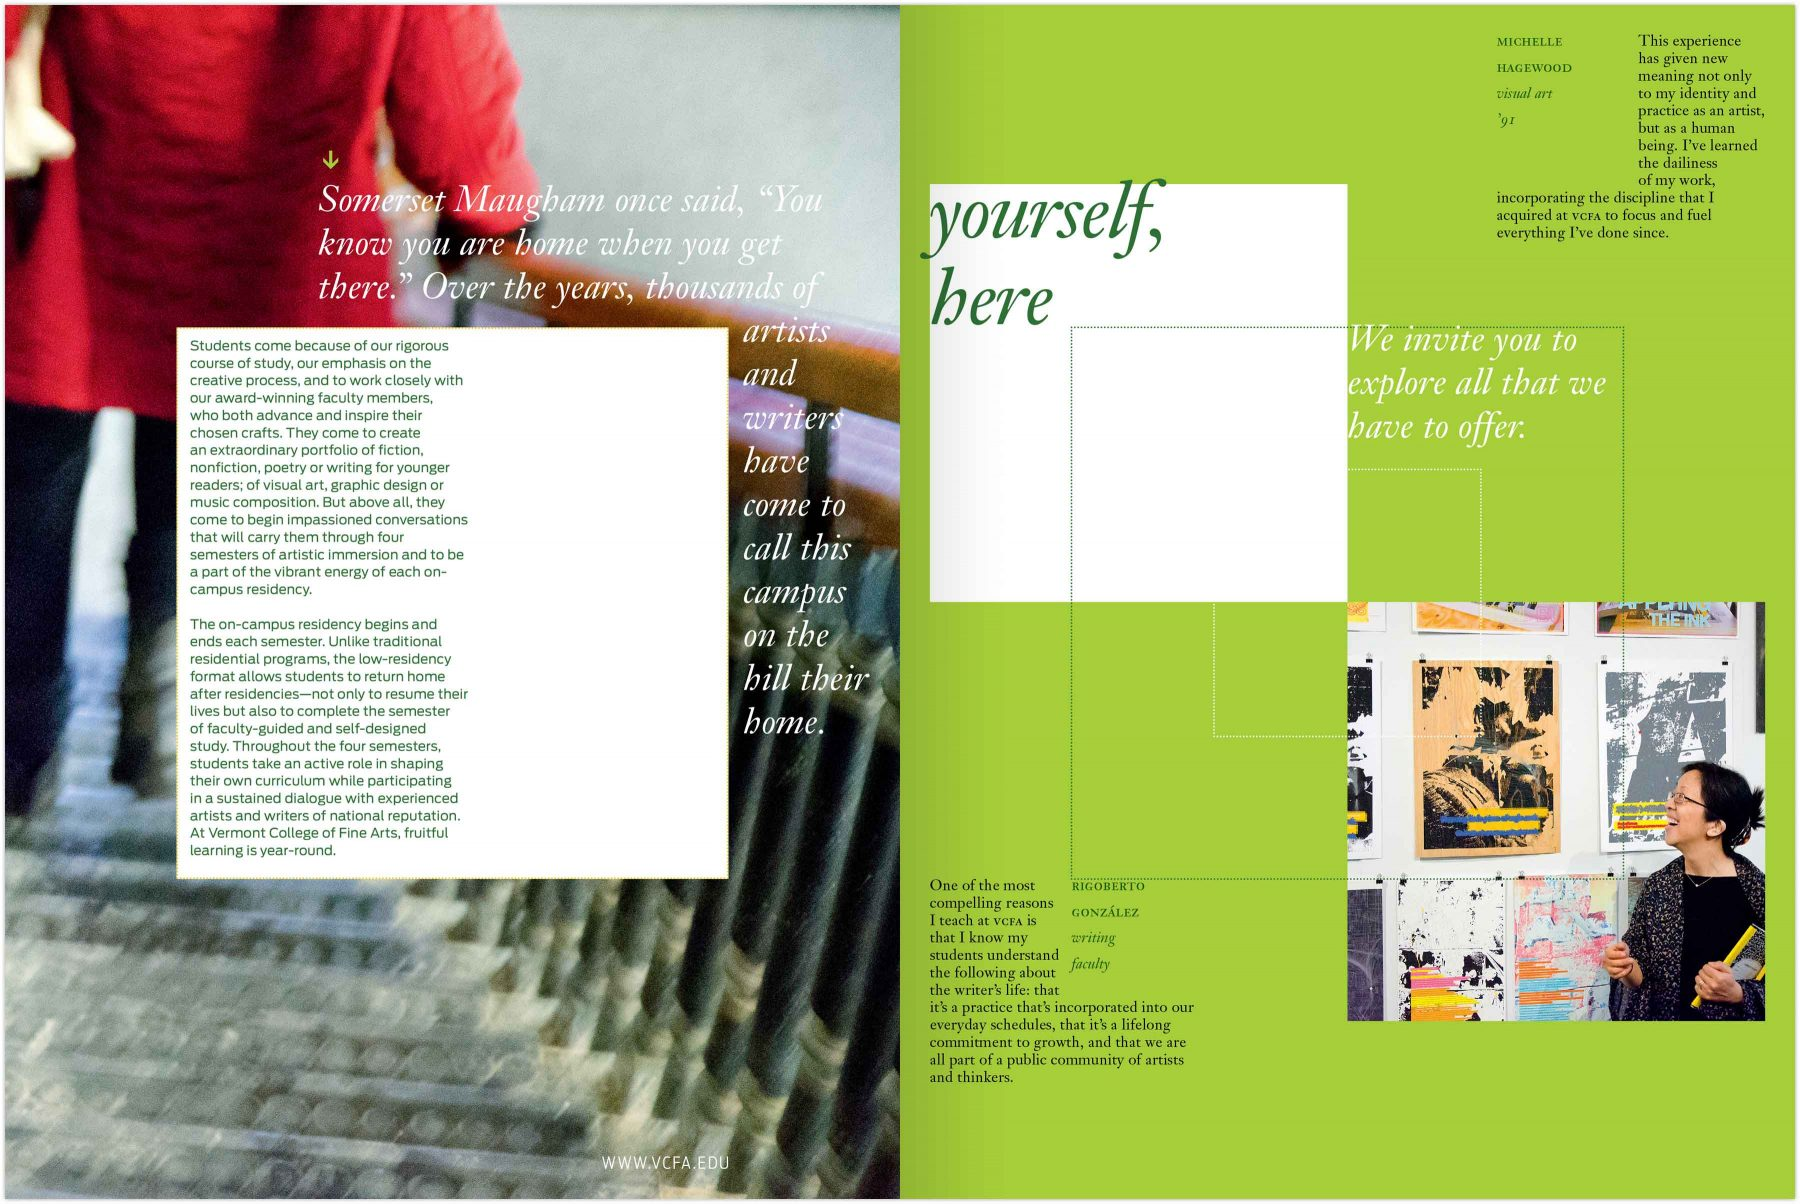 Viewbook spread: Yourself, here